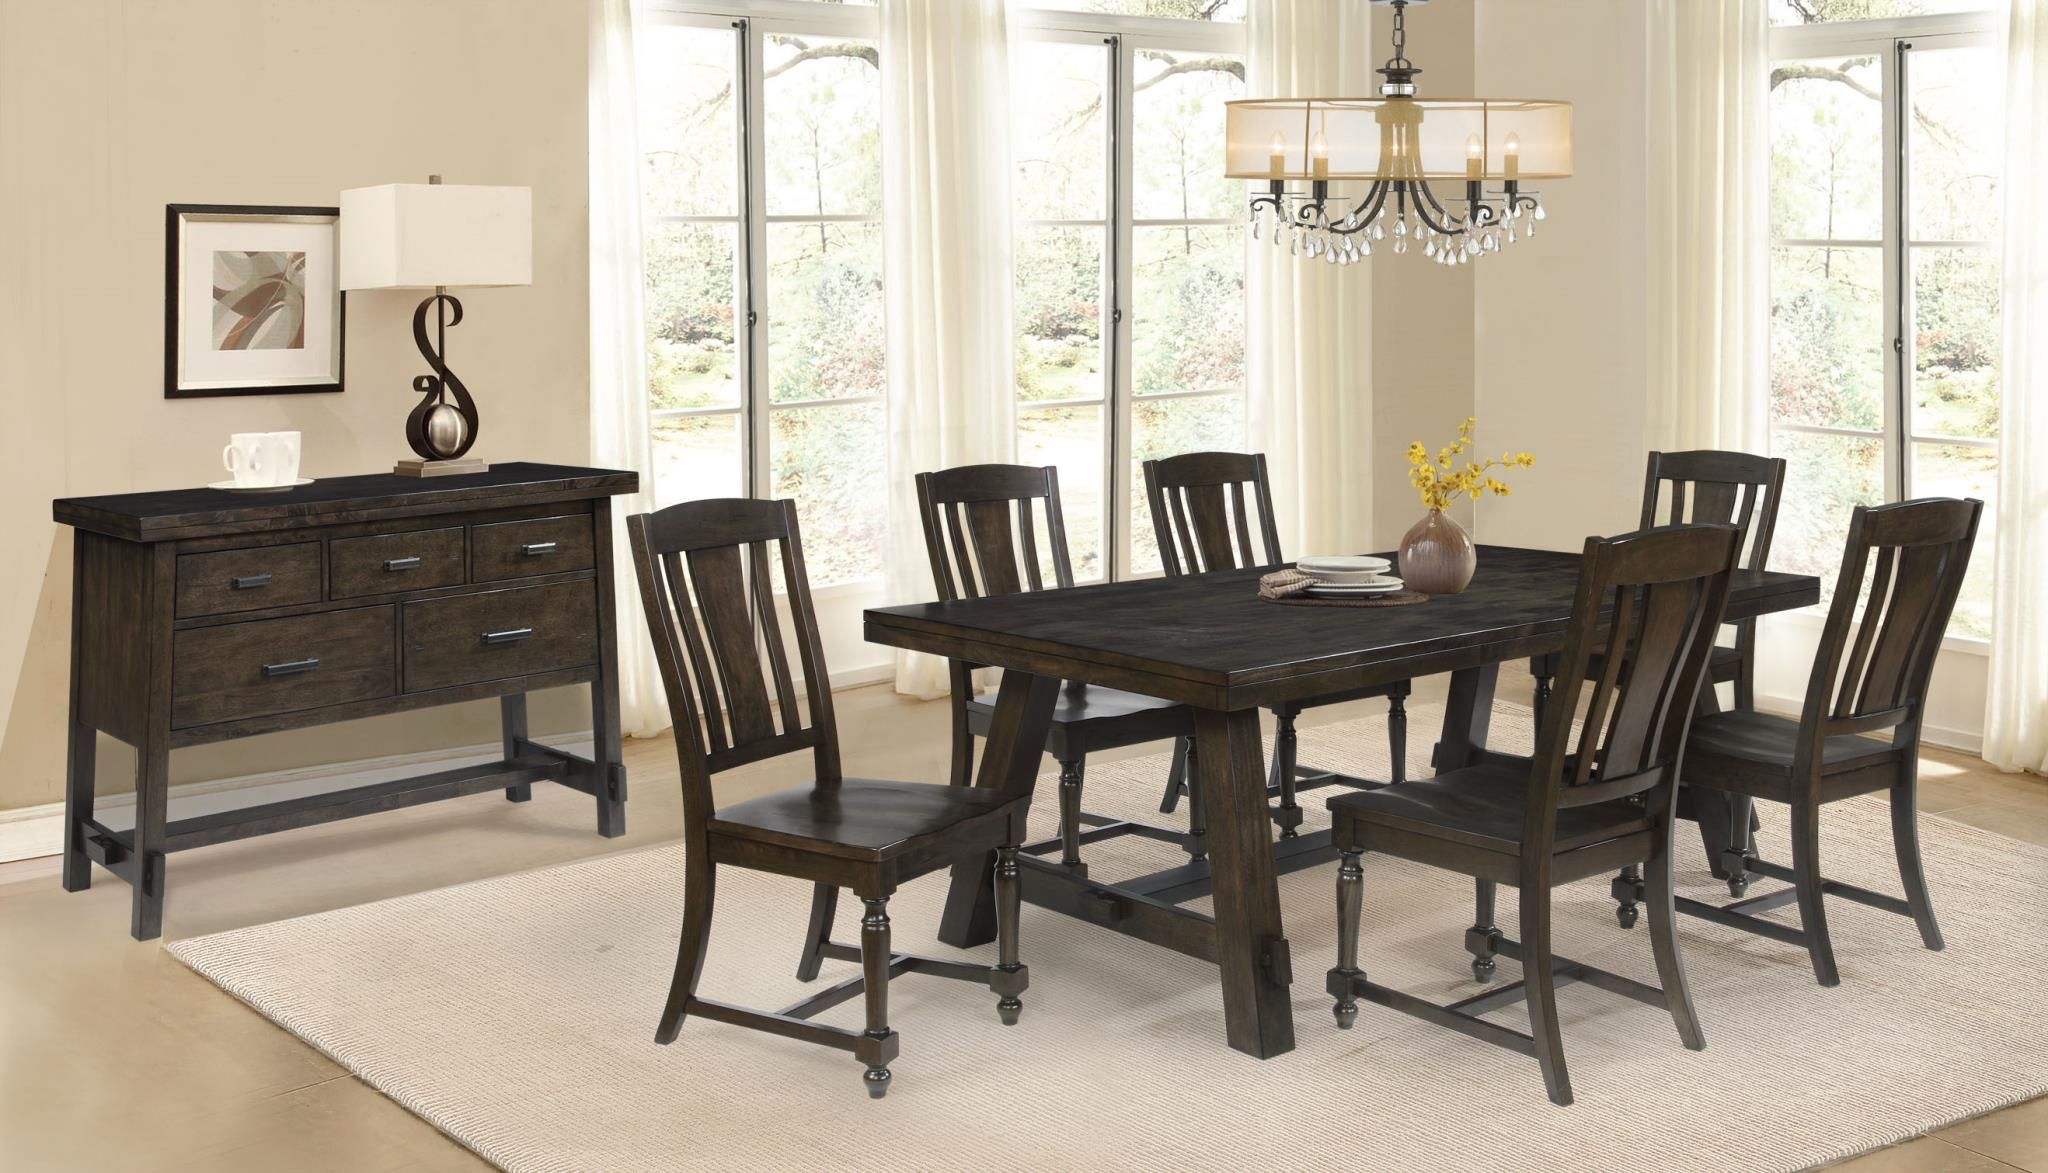 Products Tei Dining Room Sets Stylish Dining Room Dining Room Furniture